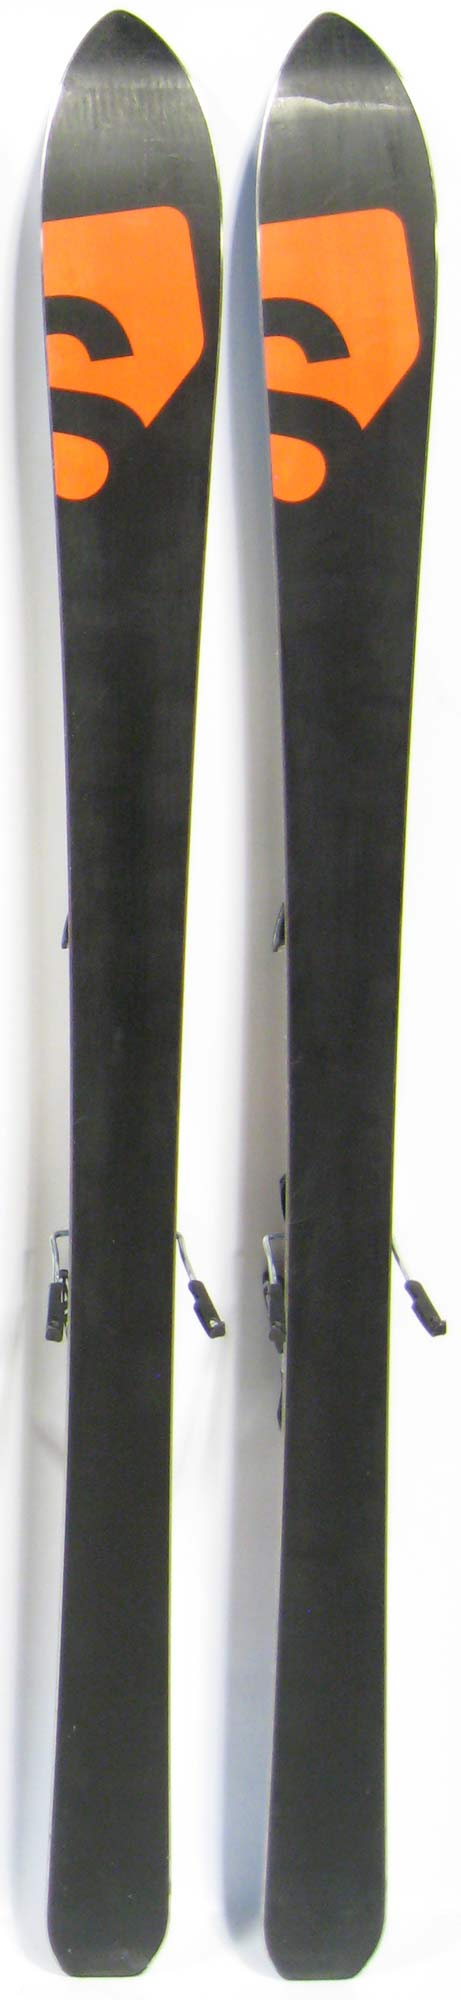 Bases of 2012 Salomon BBR 7.9 Skis For Sale